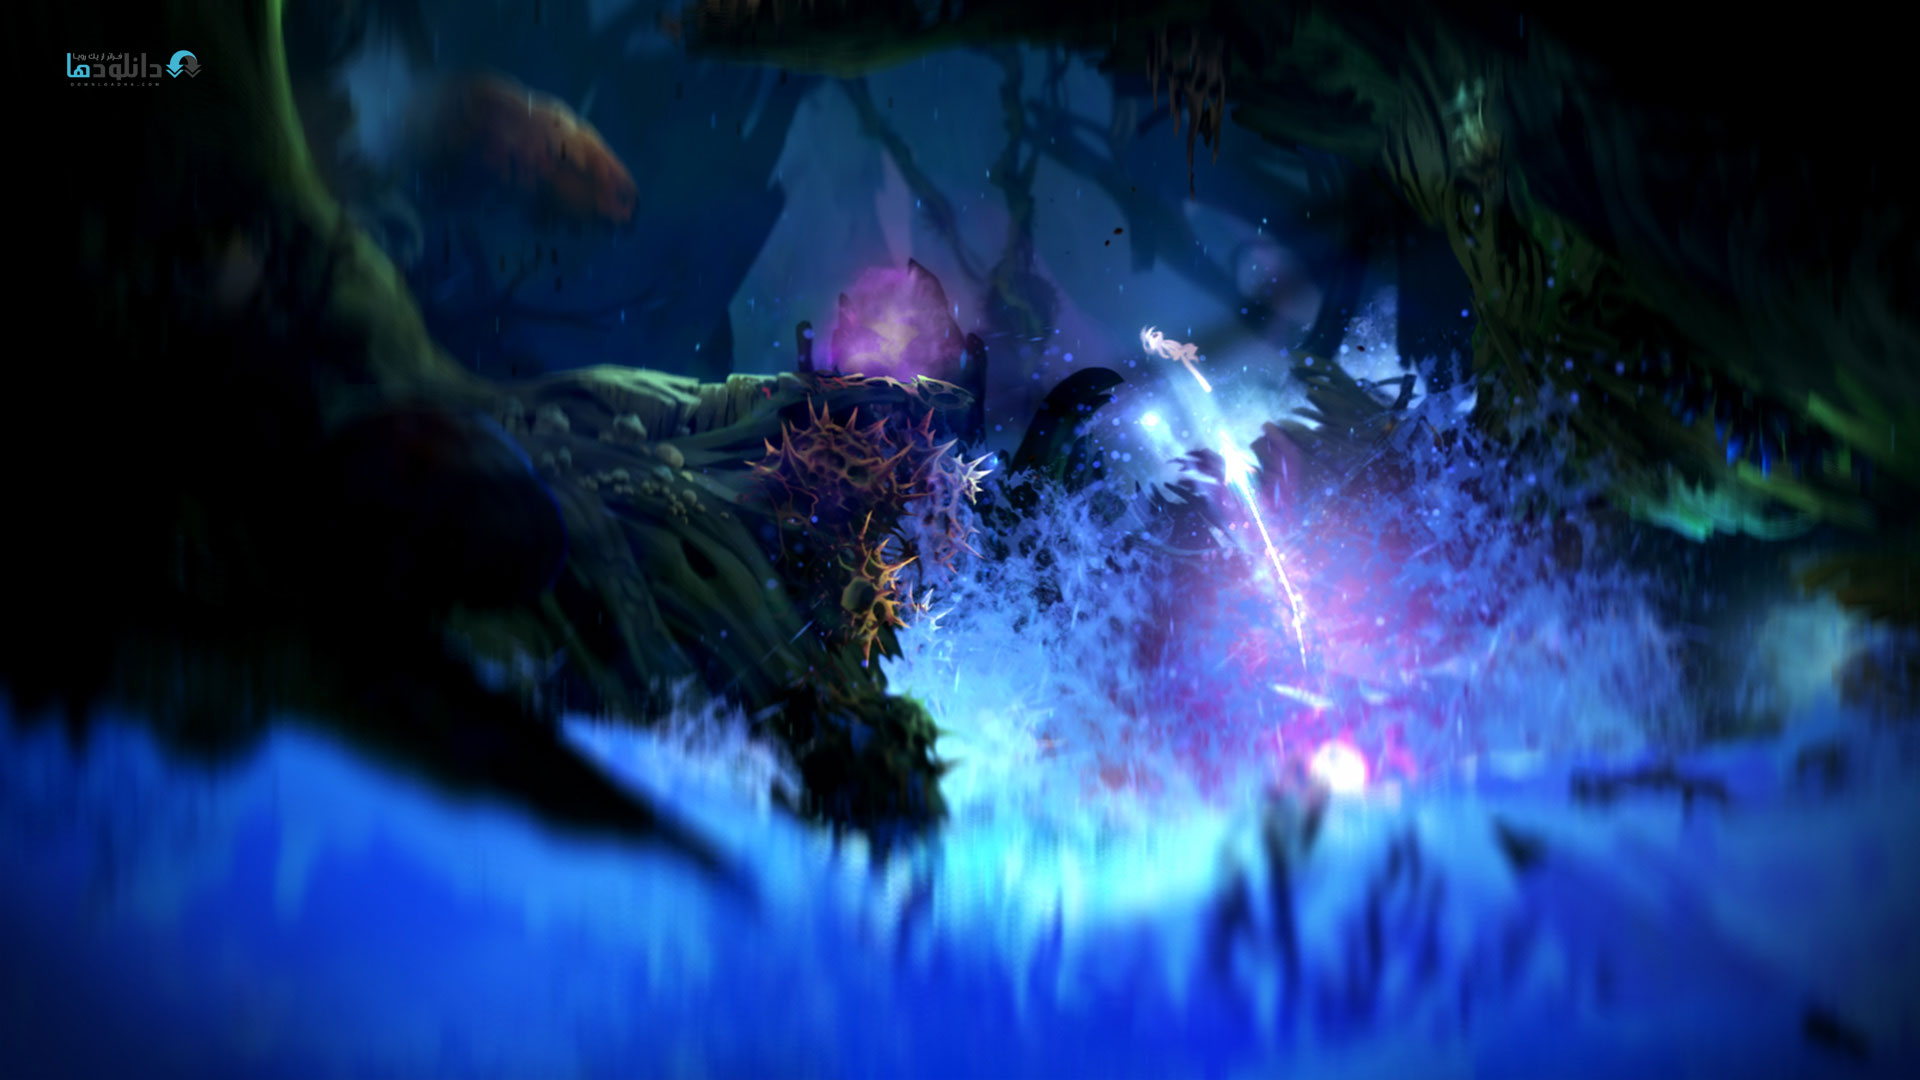 http://img5.downloadha.com/hosein/Game/March%202015/11/Ori-and-the-Blind-Forest-screenshots-06-large.jpg